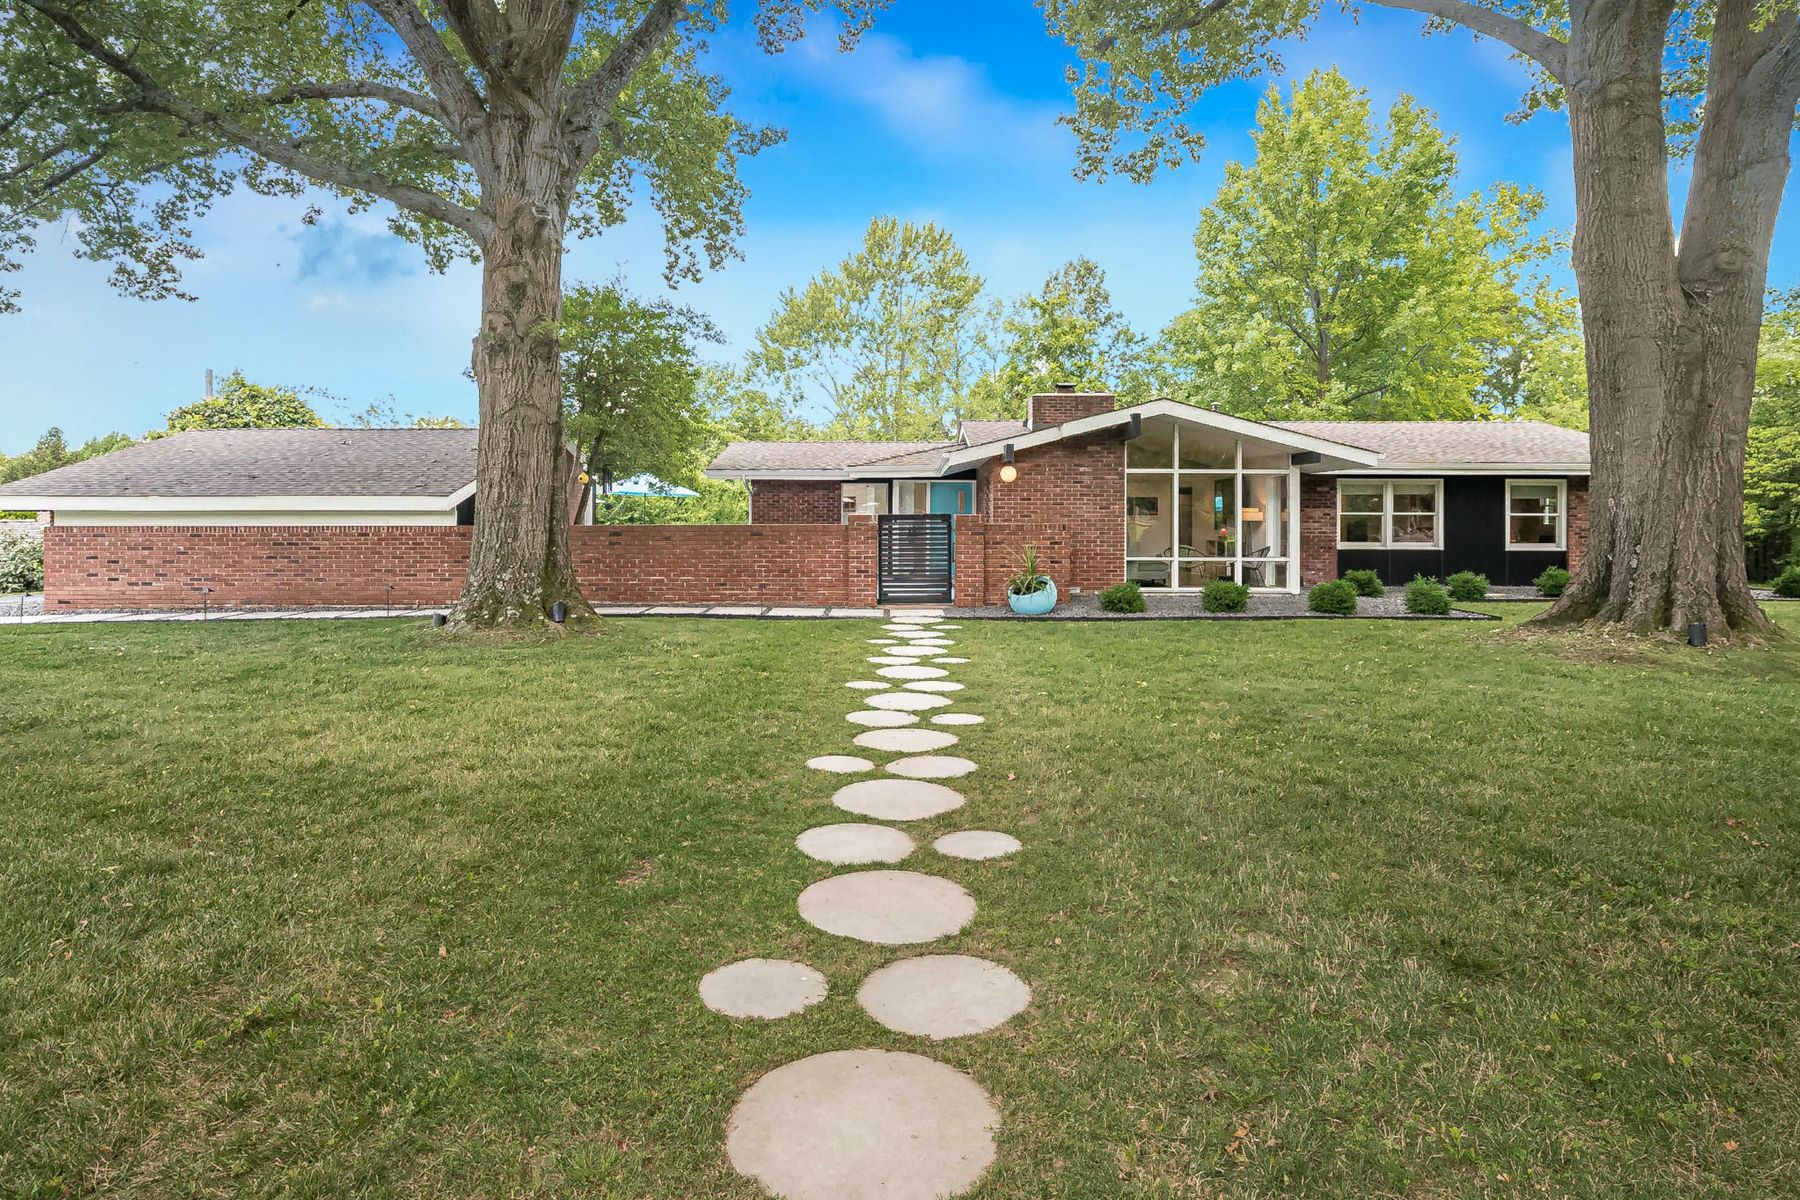 Single Family Homes for Sale at Updated and Sparkling Mid-Century Modern! 20 Sunswept Drive Creve Coeur, Missouri 63141 United States